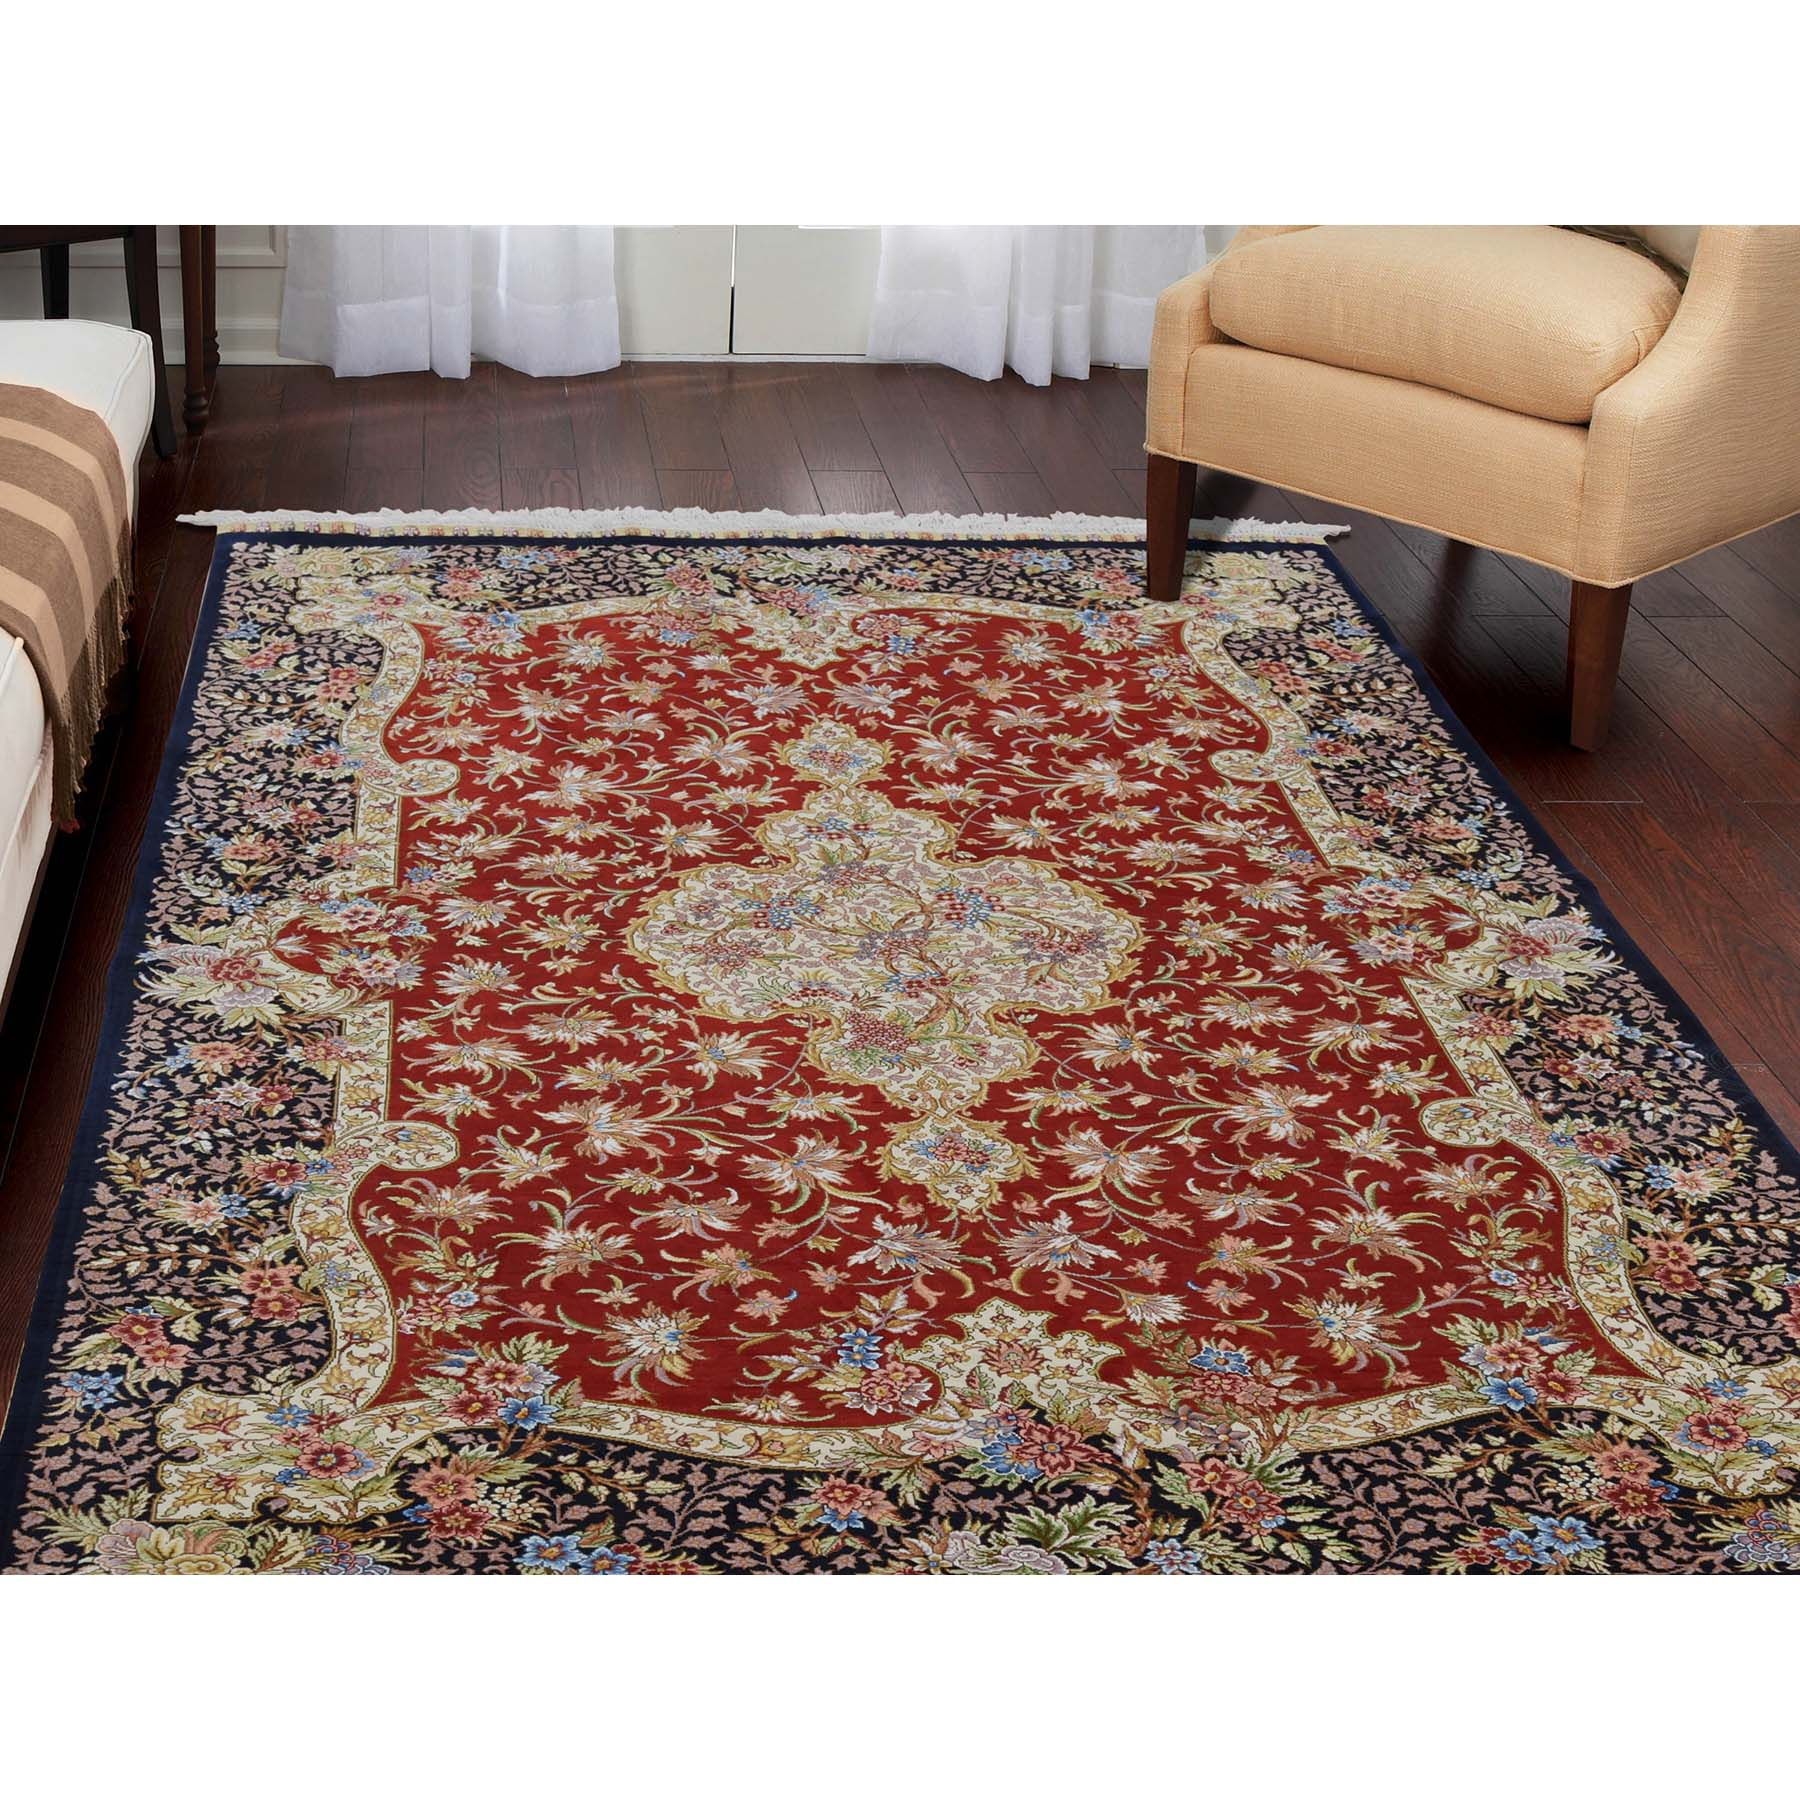 """4'1""""x6'4"""" Red Kashan 400 kpsi Pure Silk Hand-Knotted Oriental Rug"""